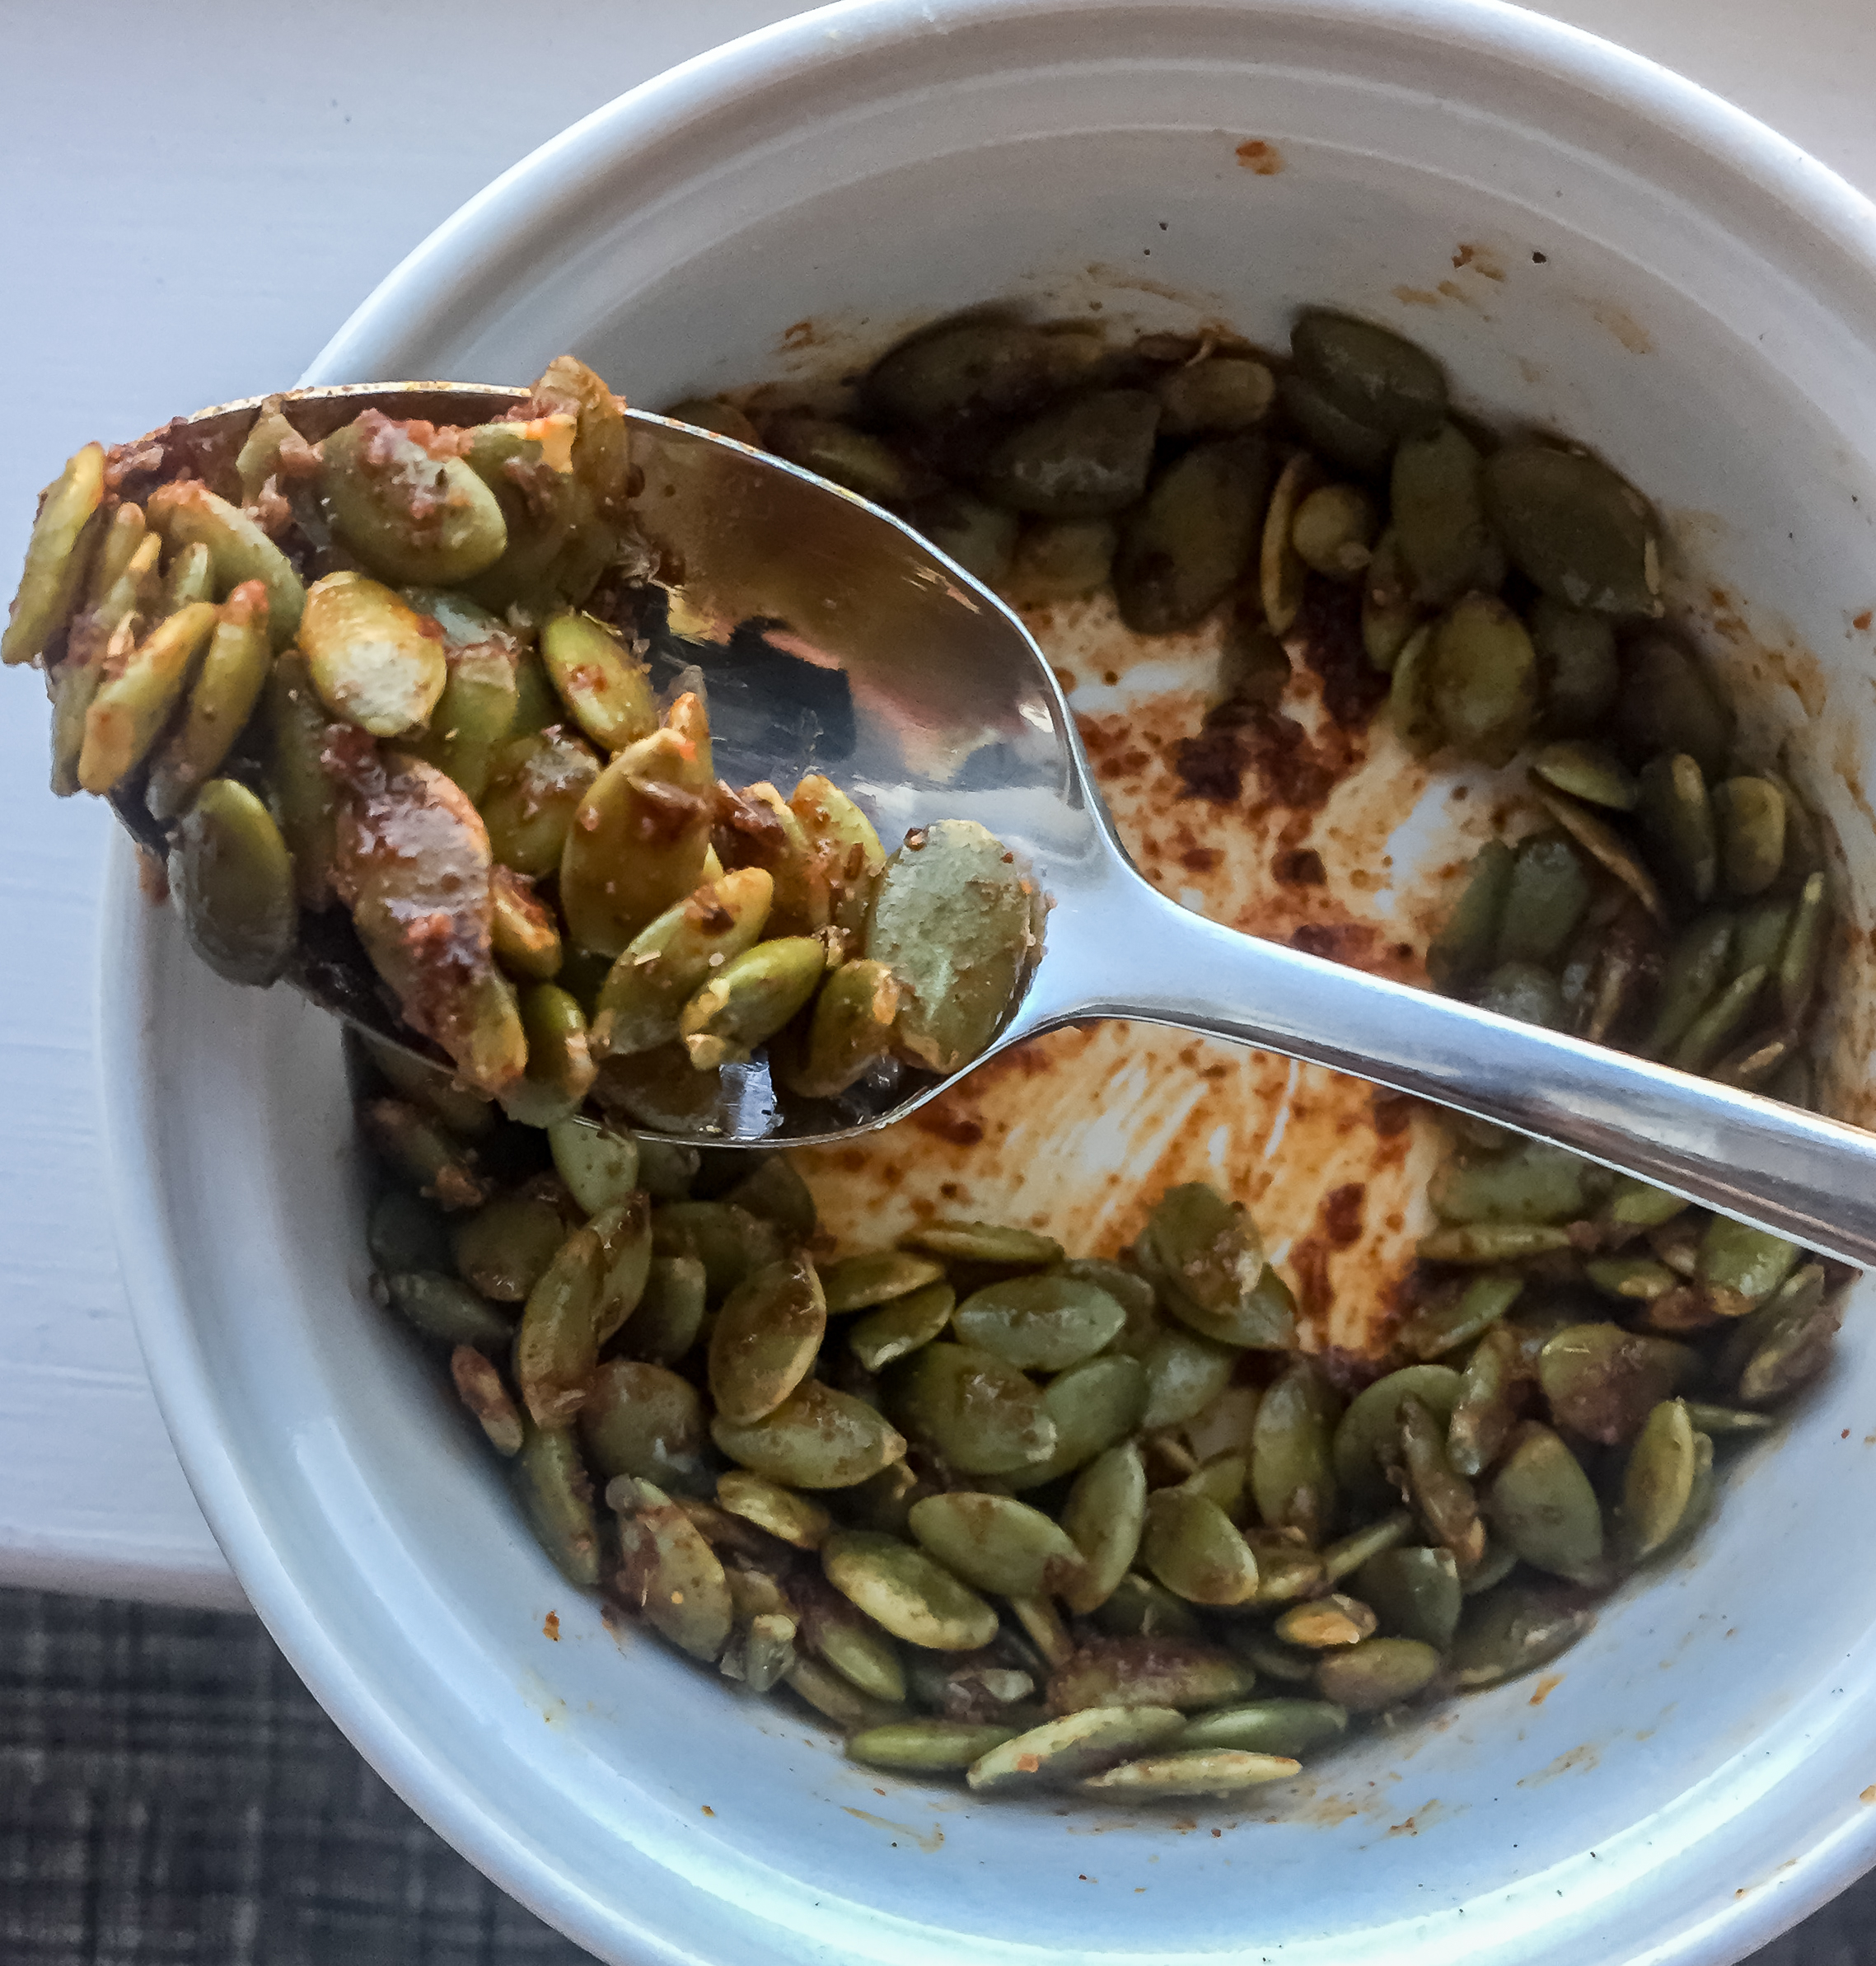 2. While that starts to cook or right before serving, heat the oil for the pepitas in a small pan for 60 seconds on medium heat. Throw in pepitas and spices. Cook for 3-4 minutes until nice and toasted.